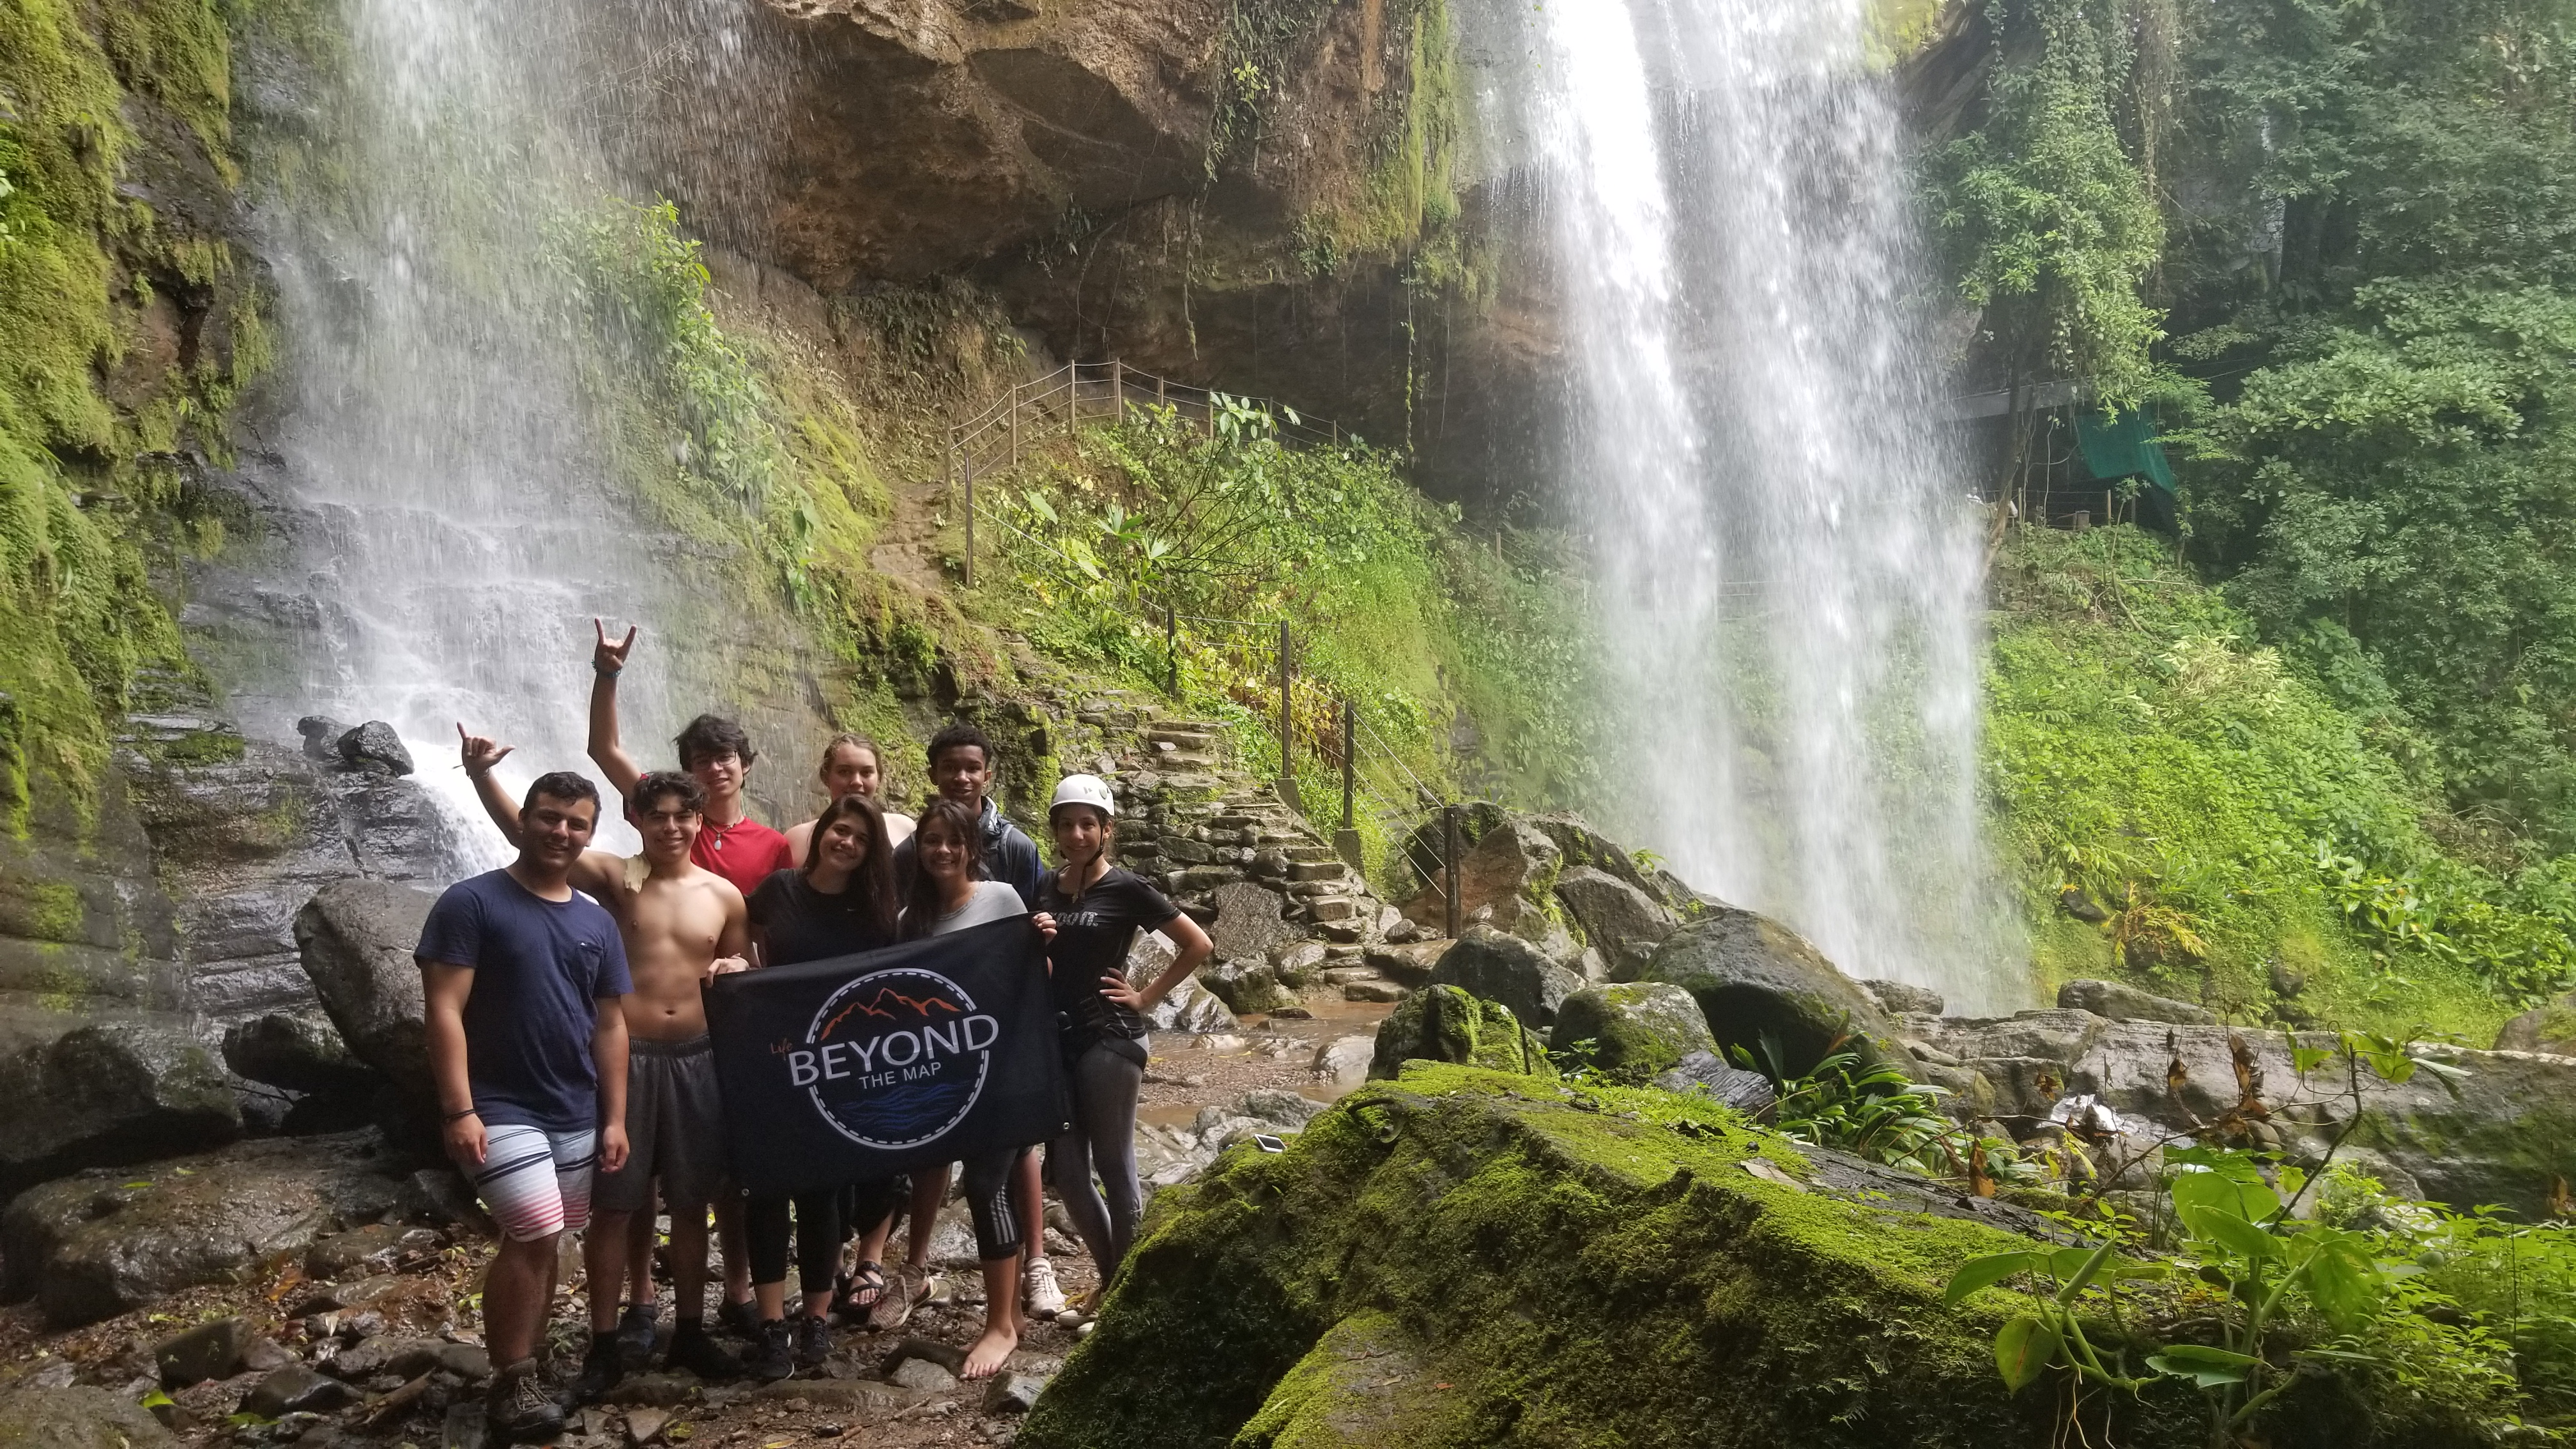 Beyond the Map- Summer Adventures for Teens